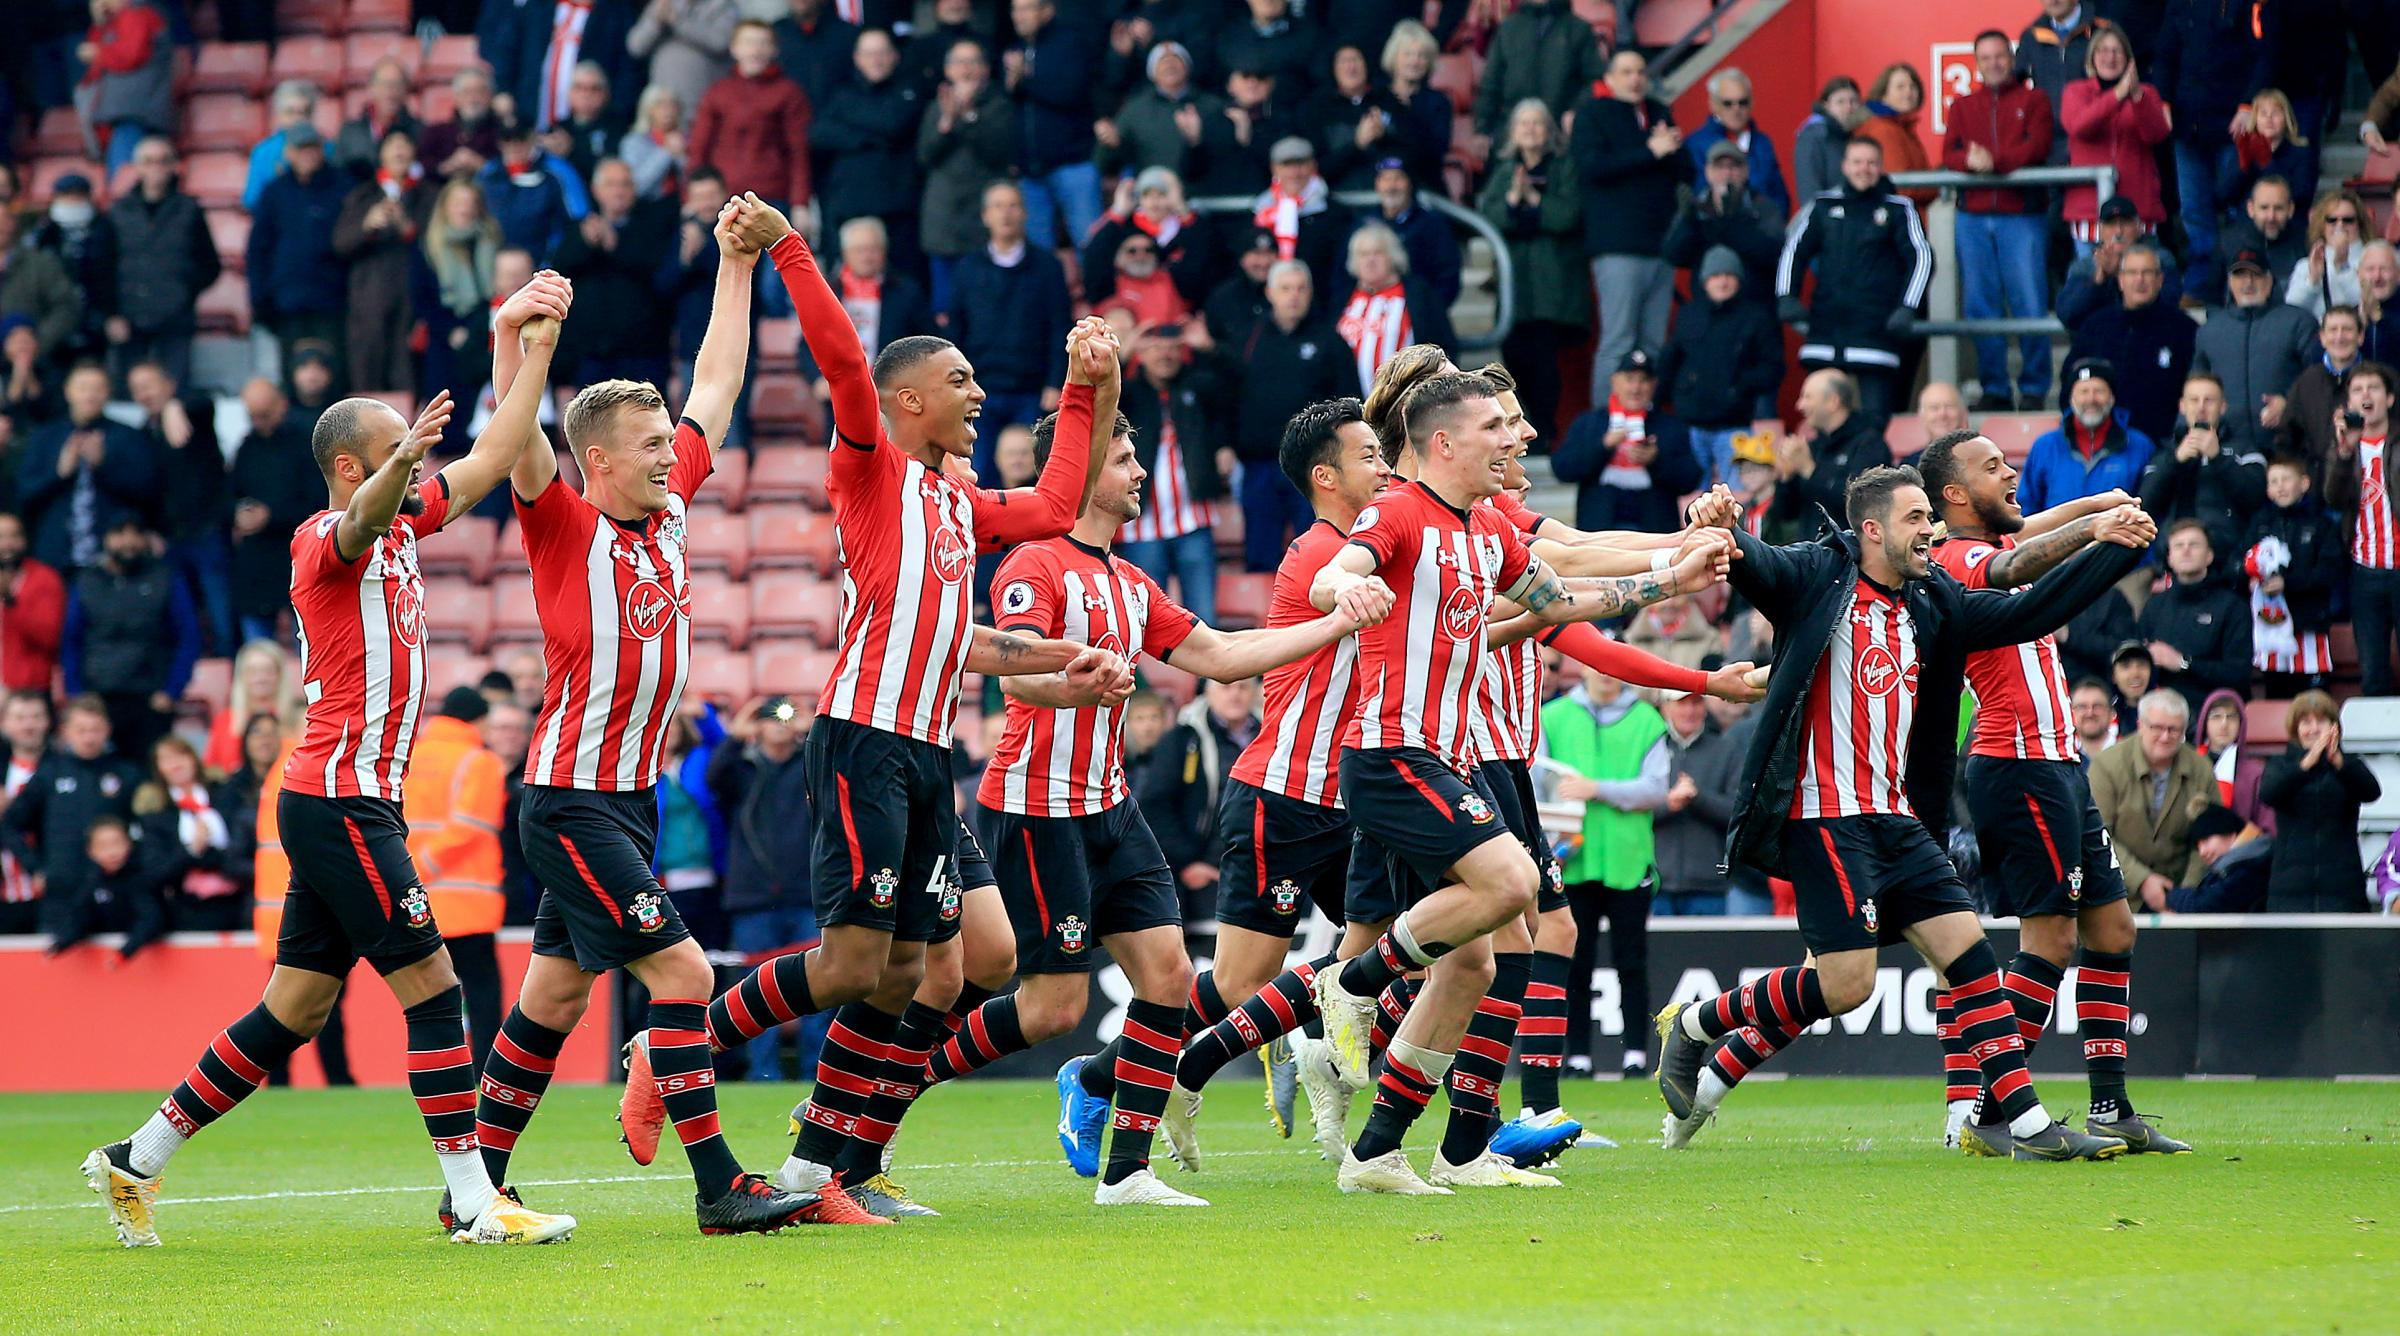 Saints celebrate in front of the fans after the Wolves win